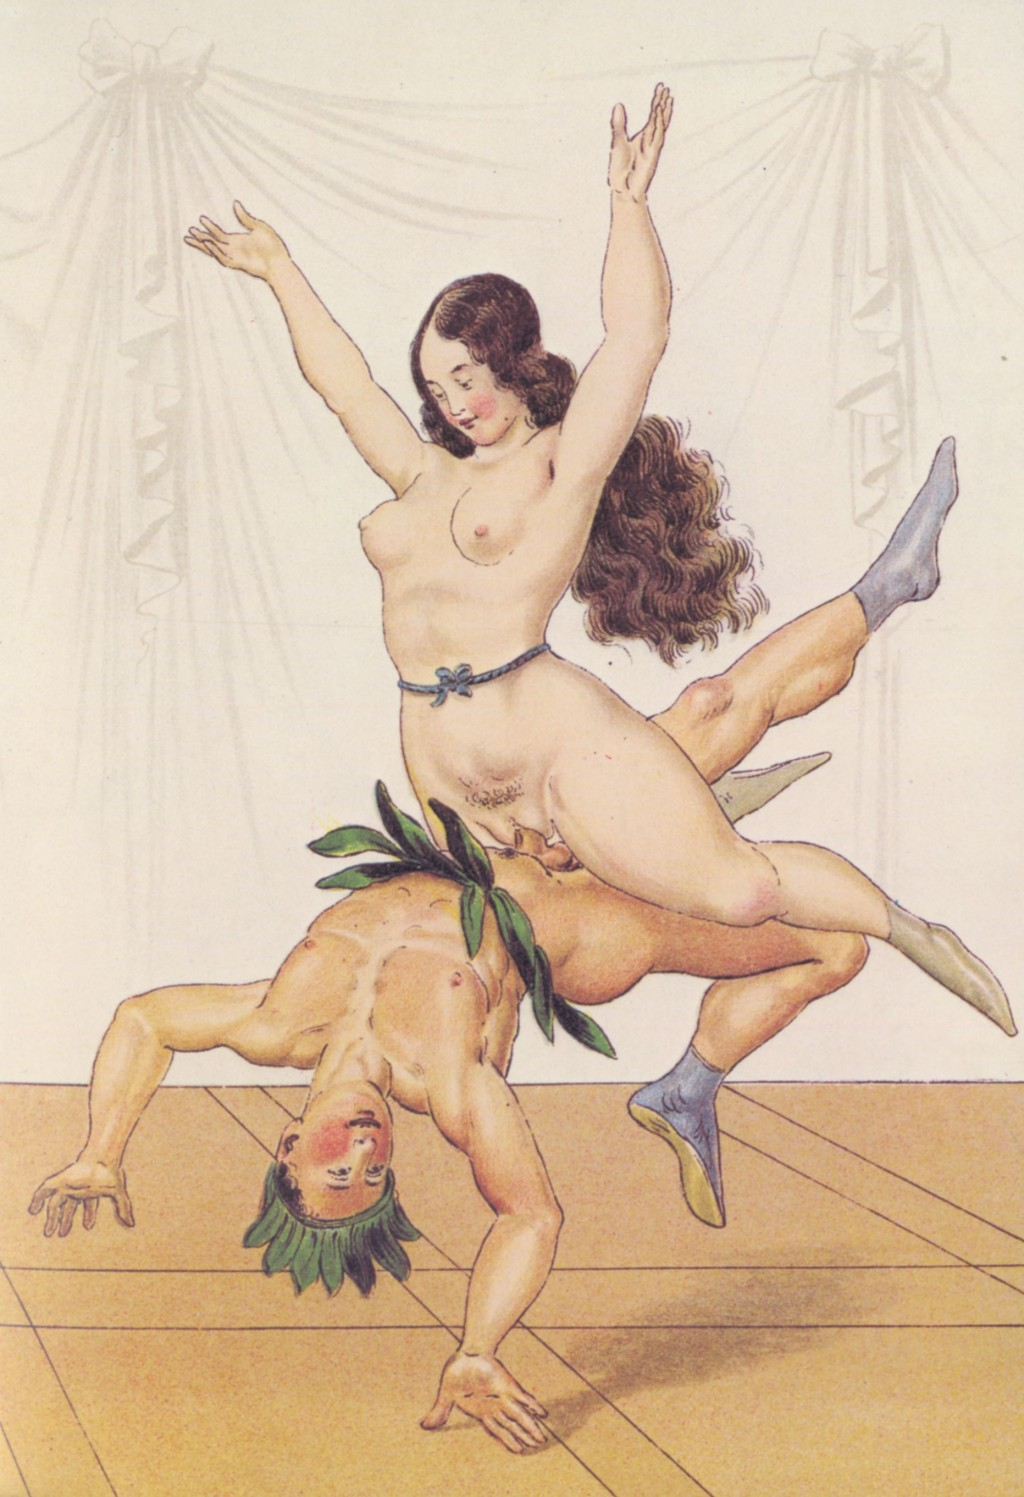 Erotic Lithographs by Peter Fendi: peter-fendis-lithographs_5_20121009_1703754409.jpeg